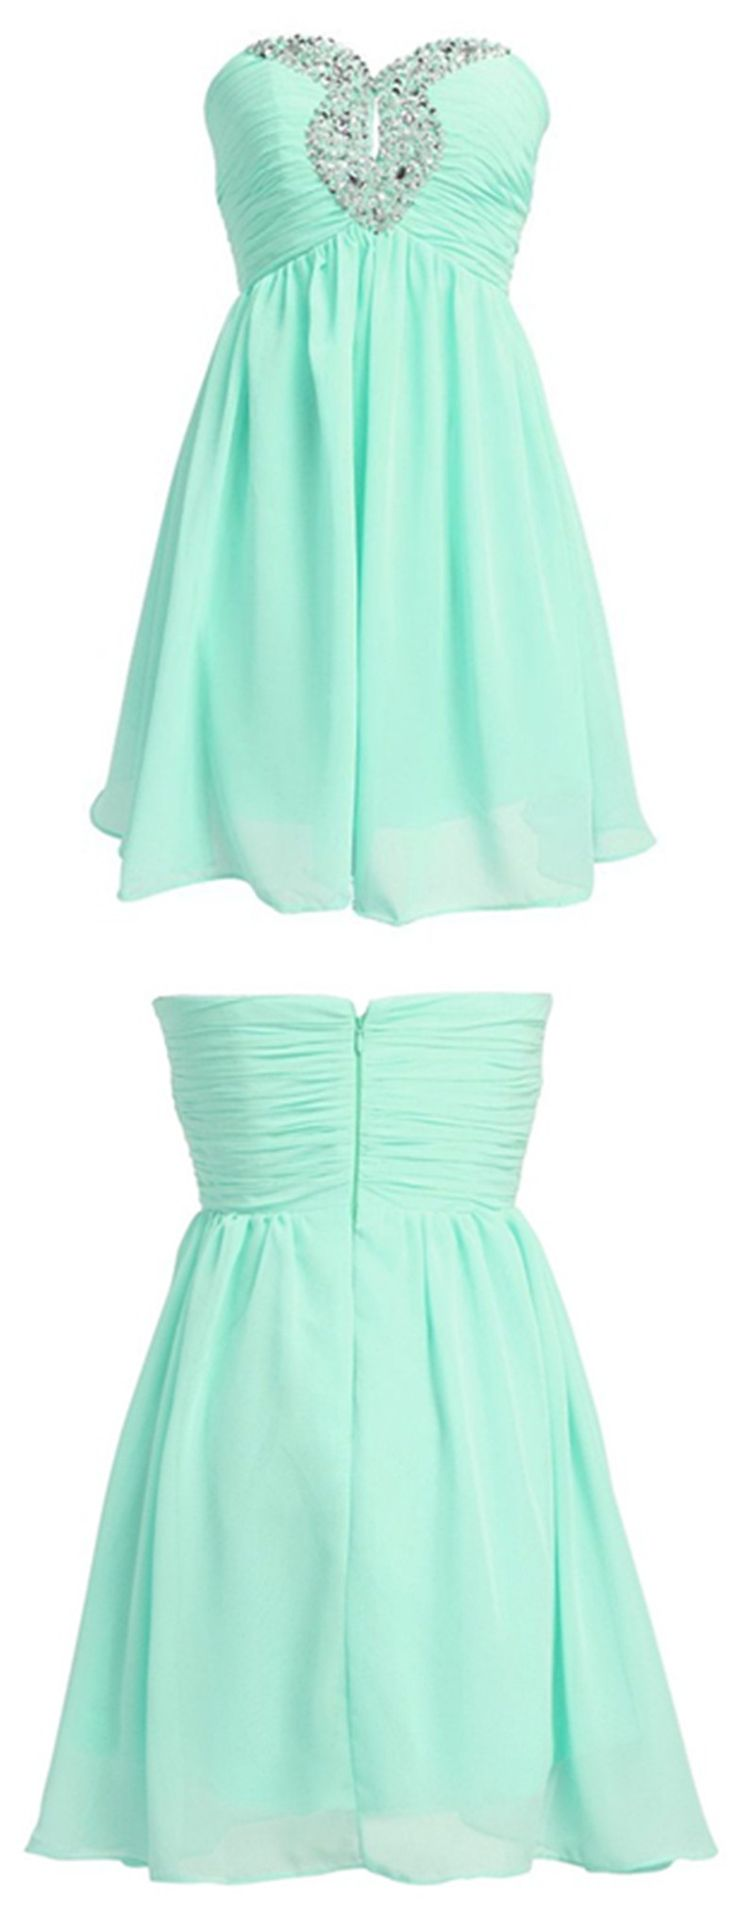 25  best ideas about Cute party dresses on Pinterest | Spring ...